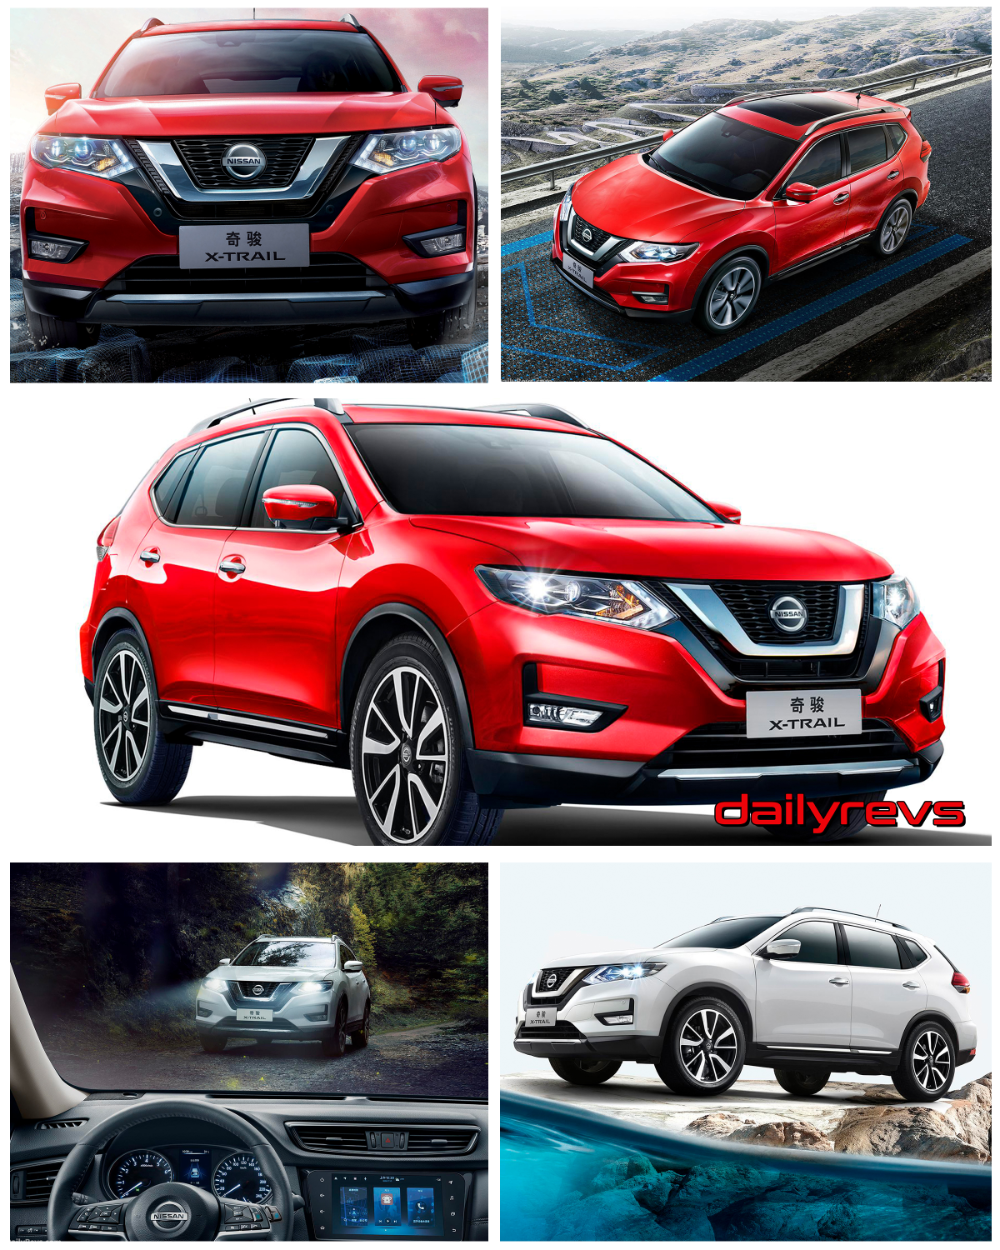 2021 Nissan X Trail Chinese Version Dailyrevs In 2021 Nissan Skoda Kodiaq New Cars